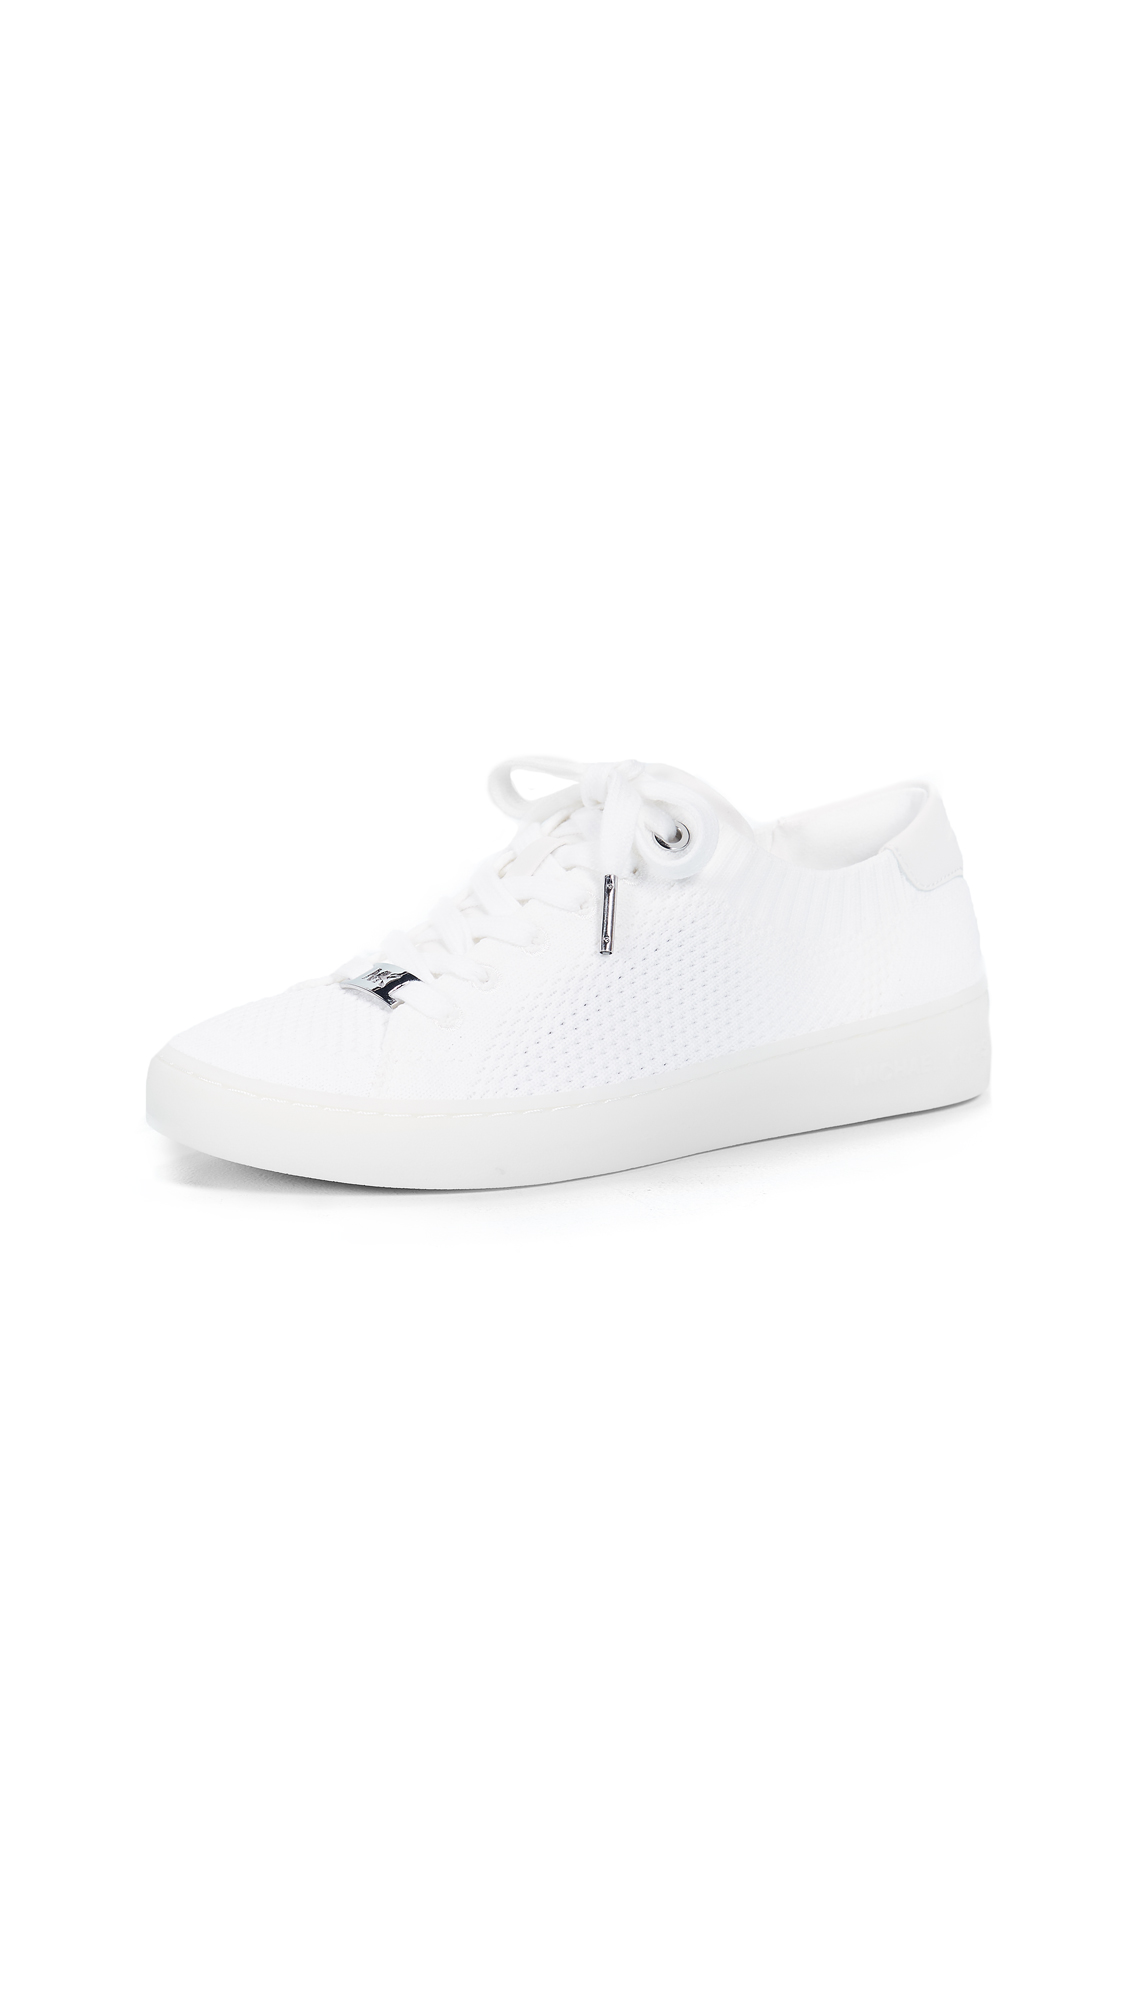 7b8f40c4c1b83 Michael Michael Kors Skyler Sneakers In Optic White